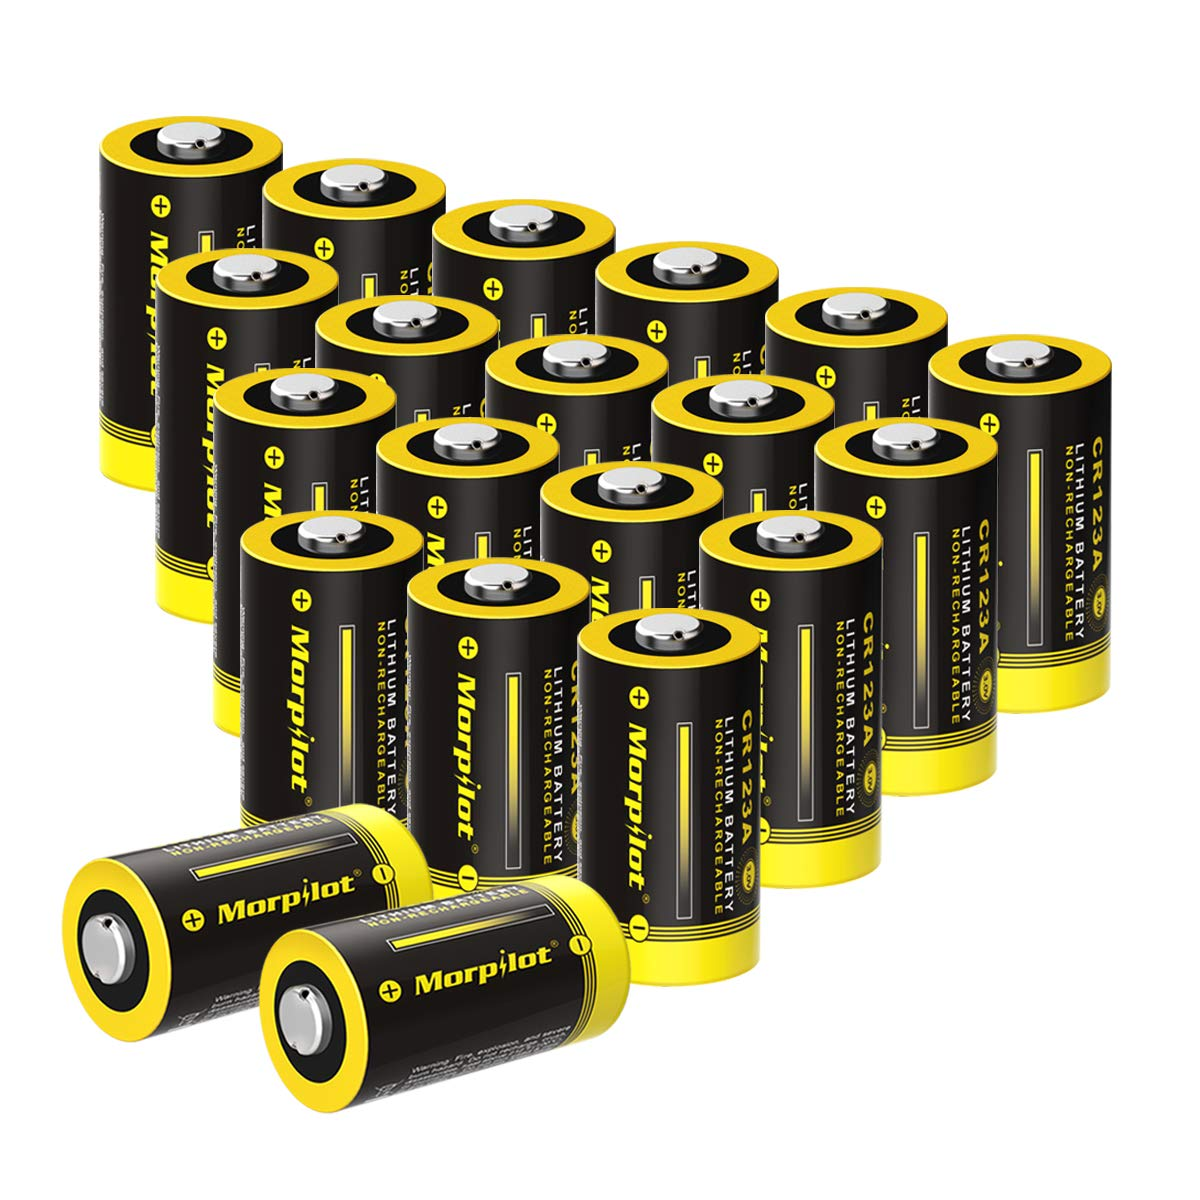 20-Pack CR123A Batterien, CR17345 1500mAh 3V Lithium Batterie für Digitalkameras, Alarmanlagen, Sicherheitstechnik, Rauchmelder, Taschenlampen usw. - [Nicht wiederaufladbar]